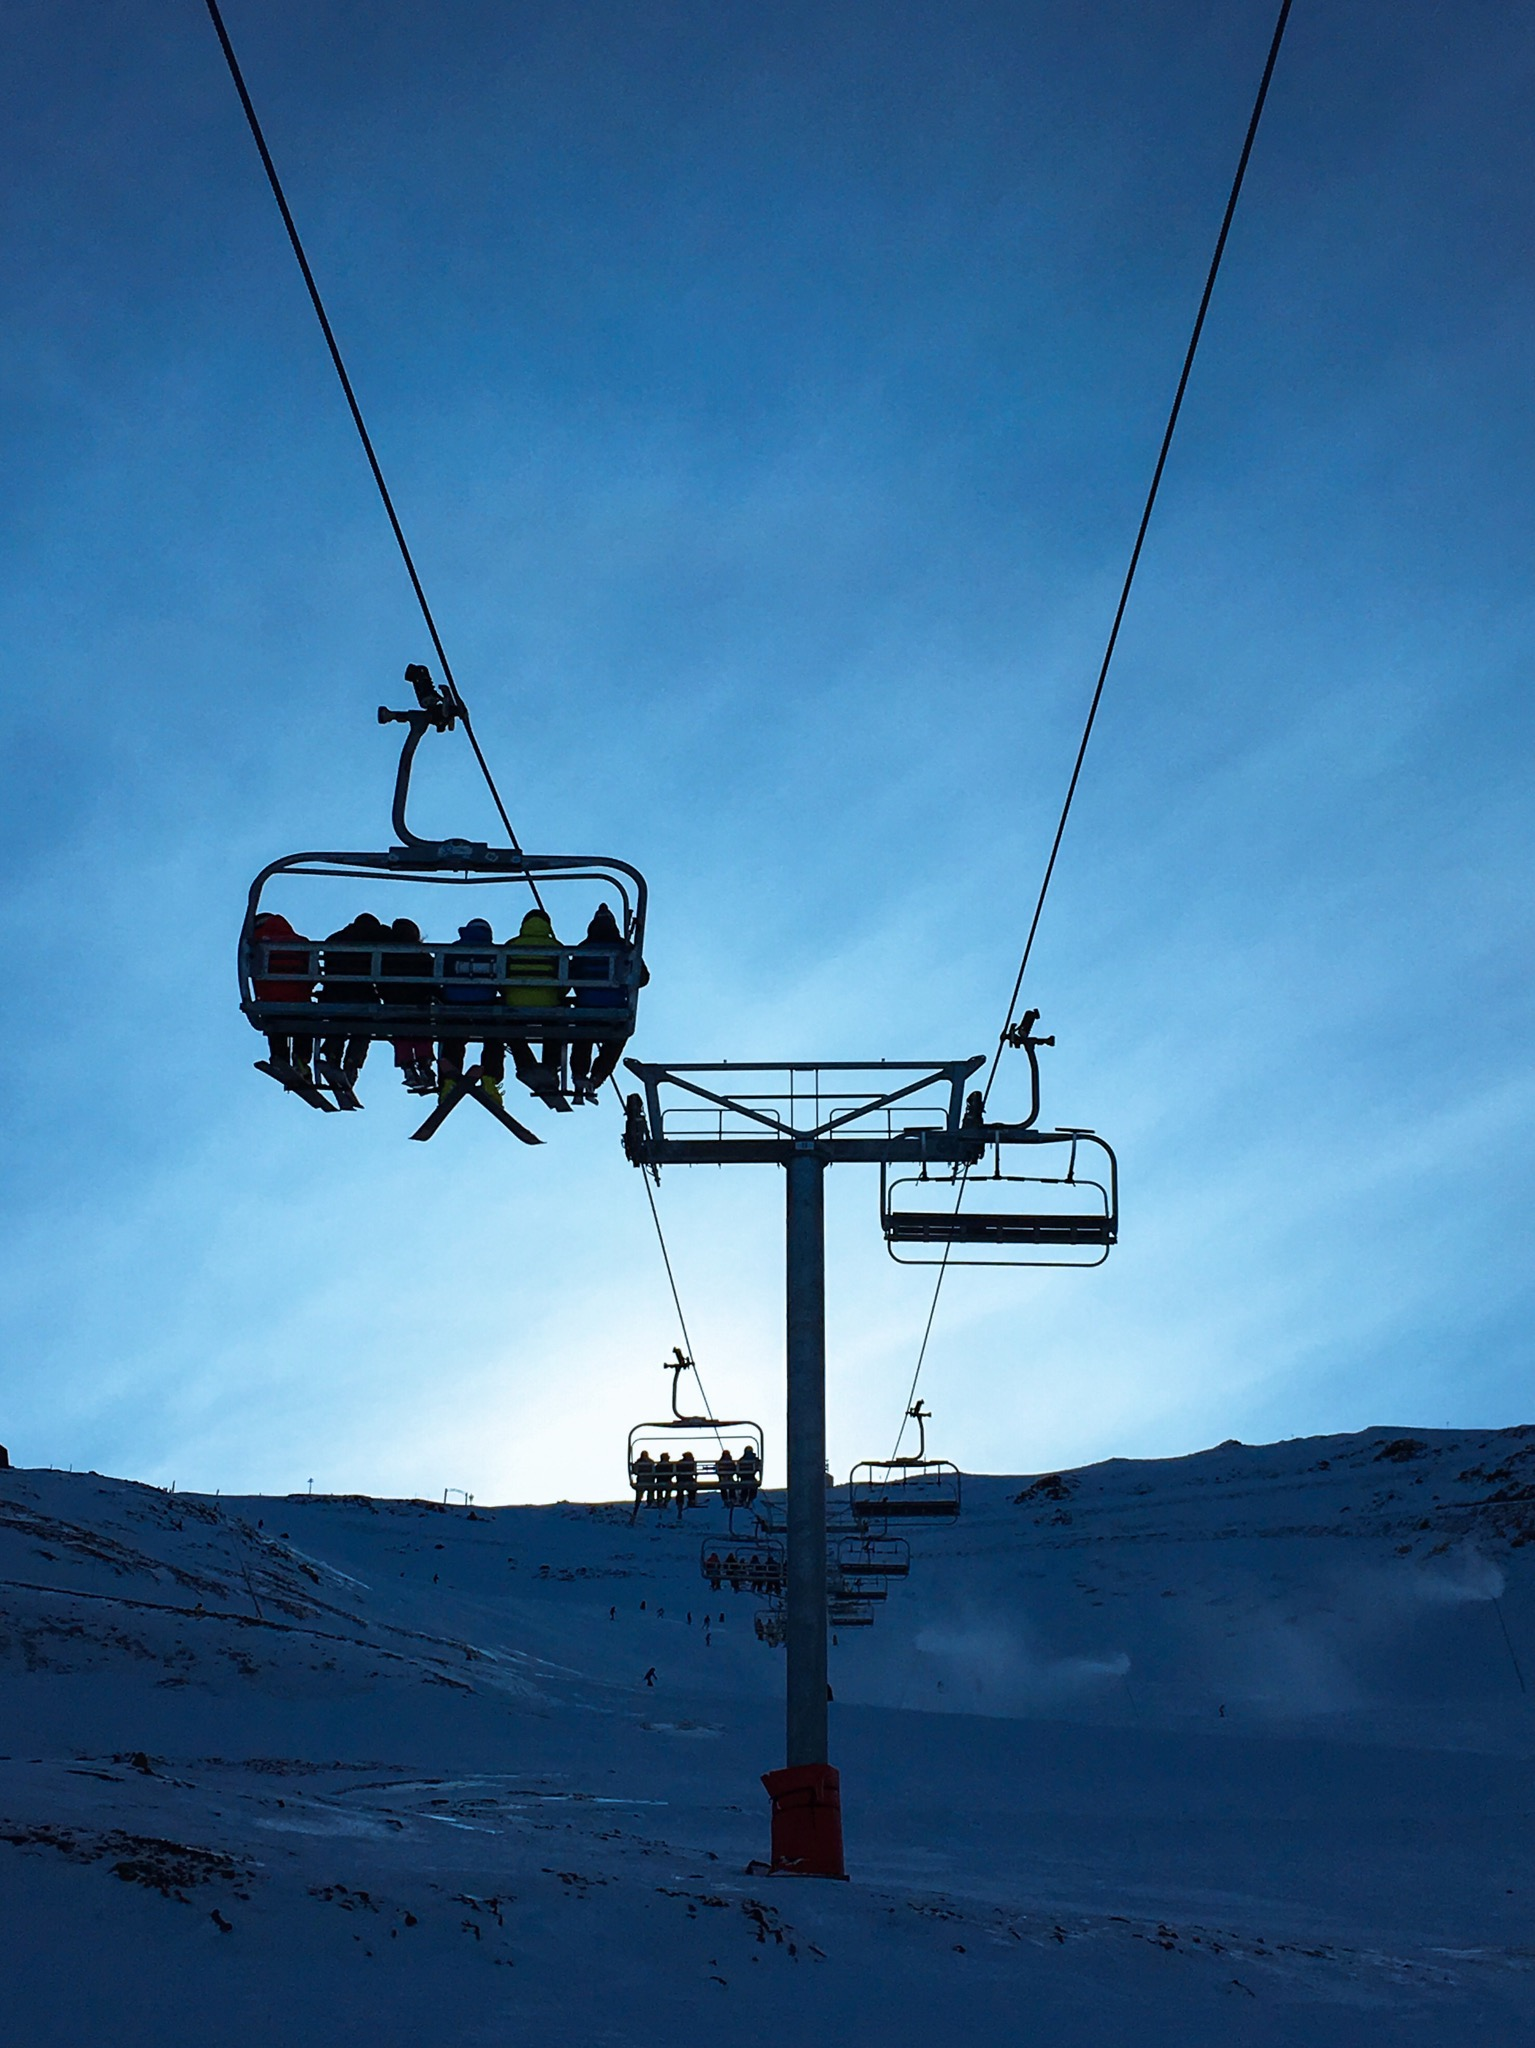 Chairlift Etiquette: How to get off a chairlift gracefully